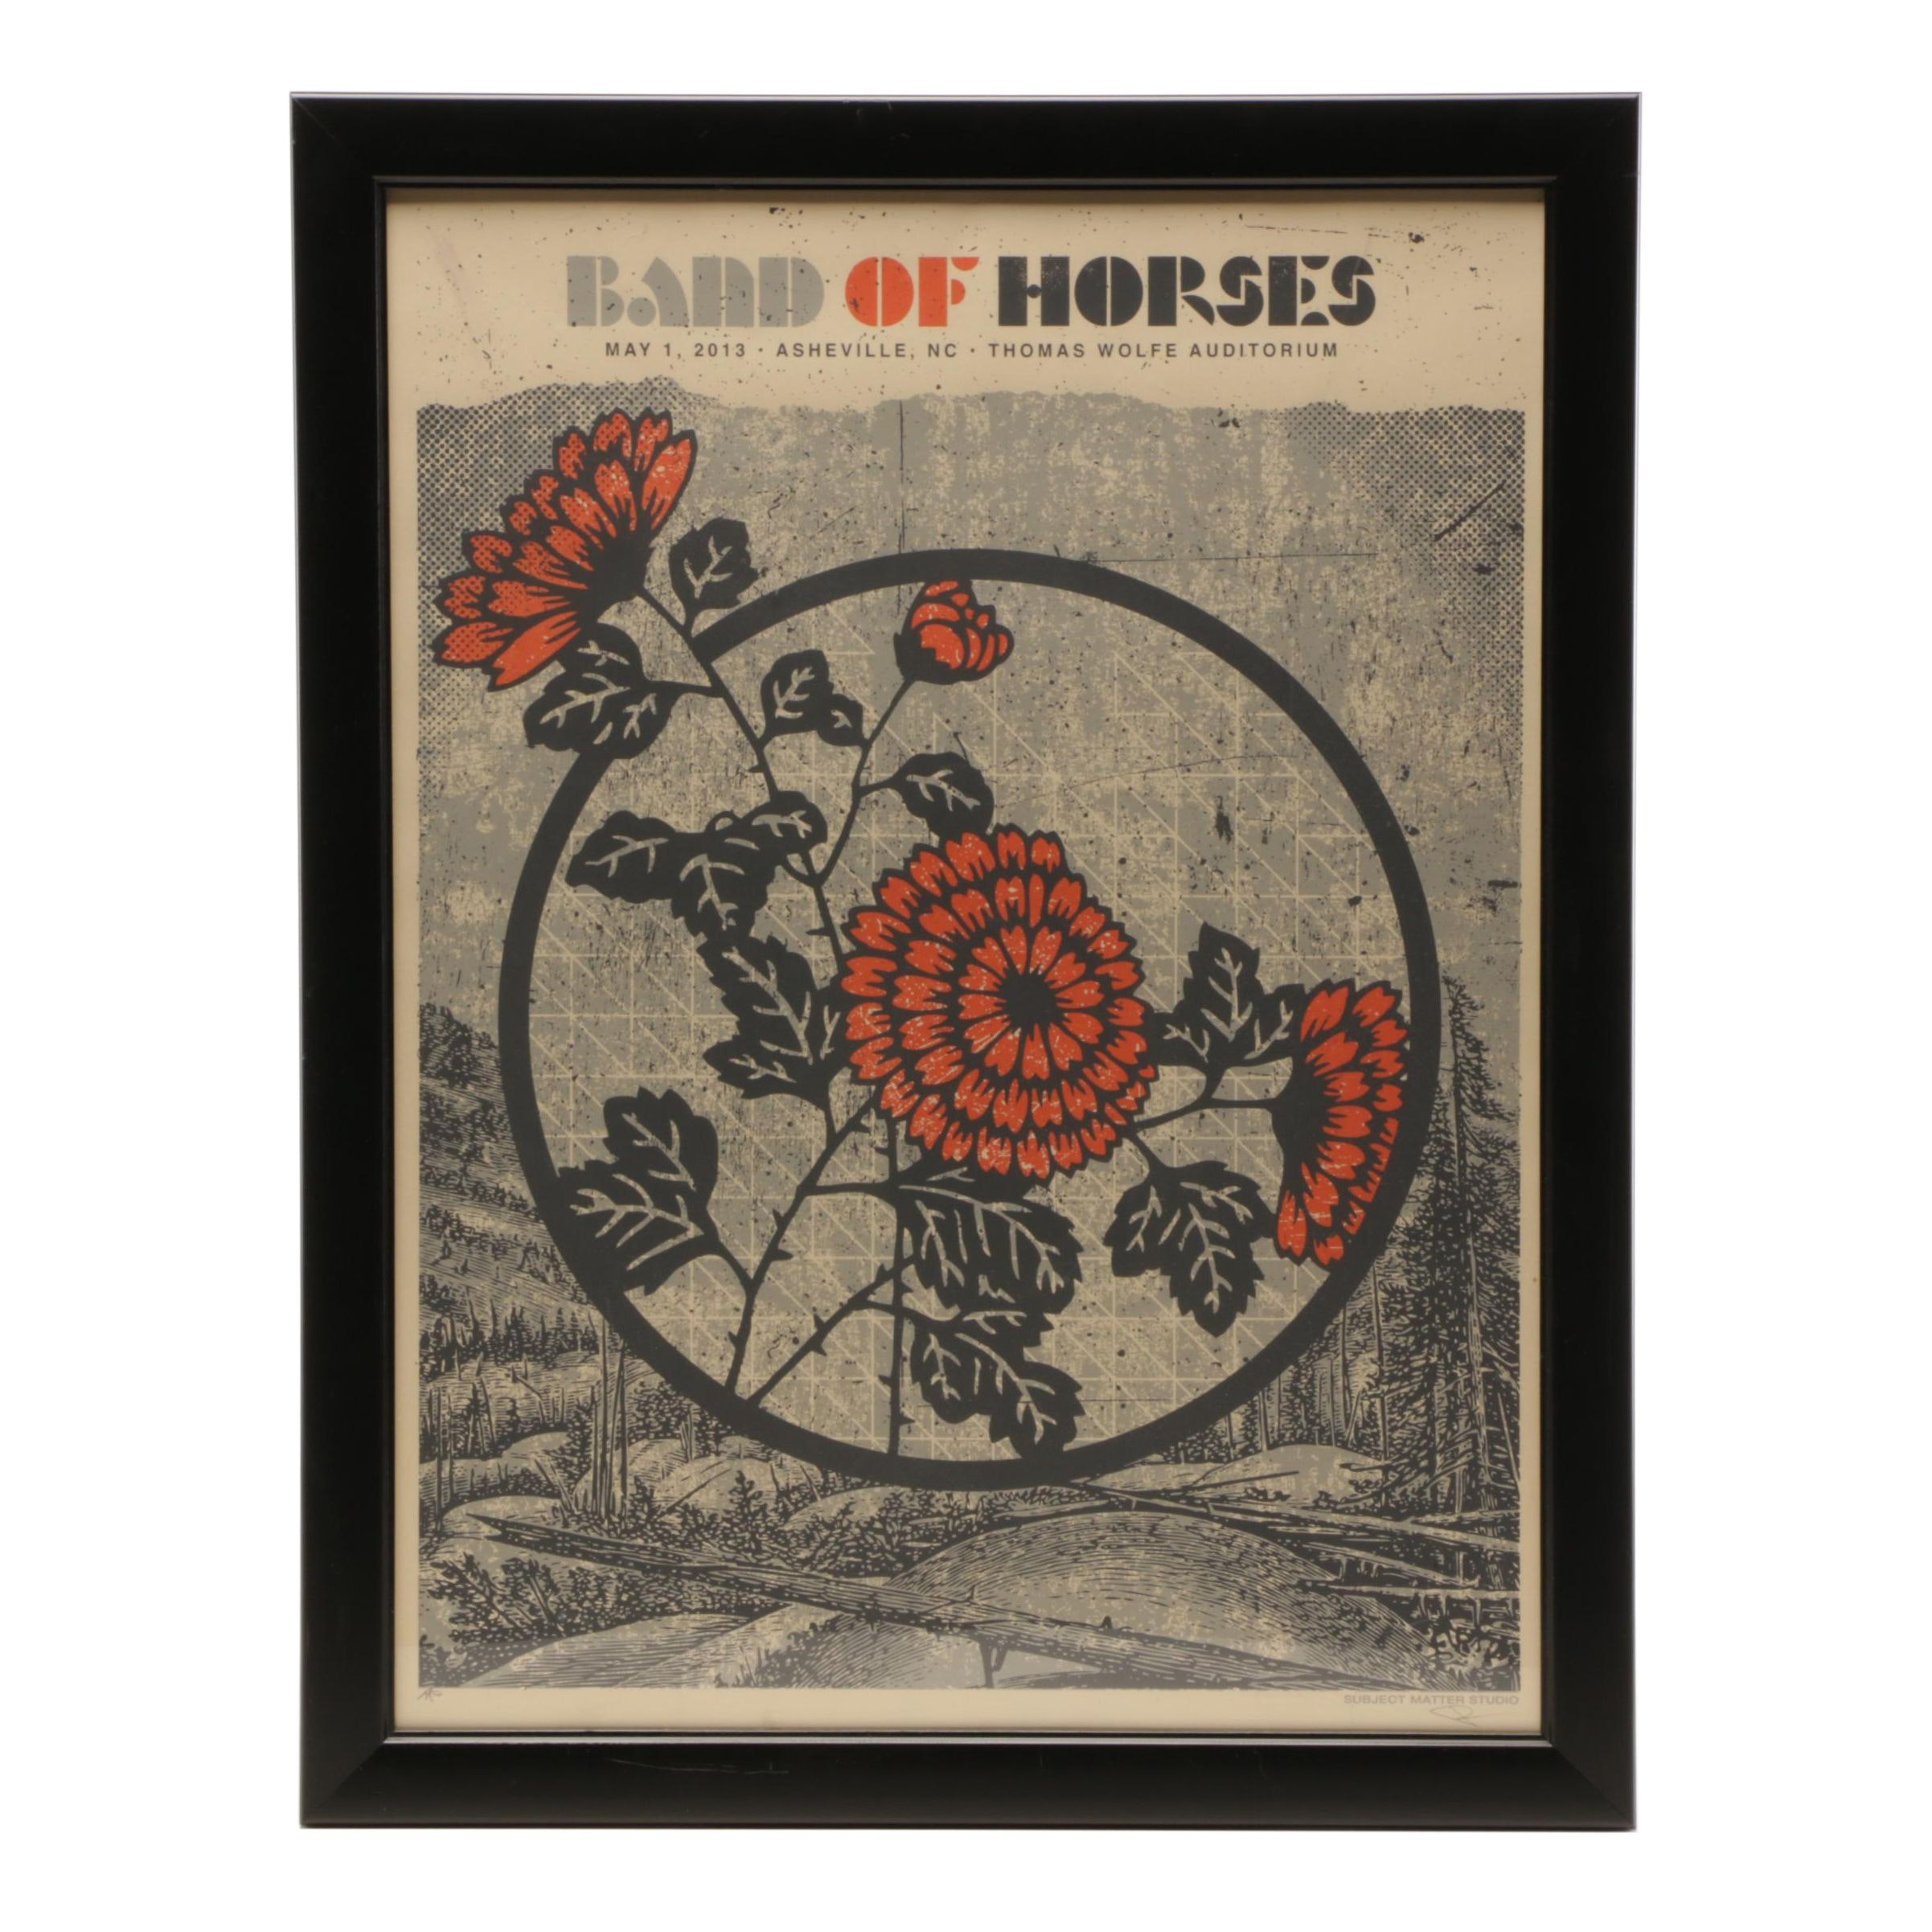 Band of Horses Artist Proof Serigraph Poster by Subject Matter Studio